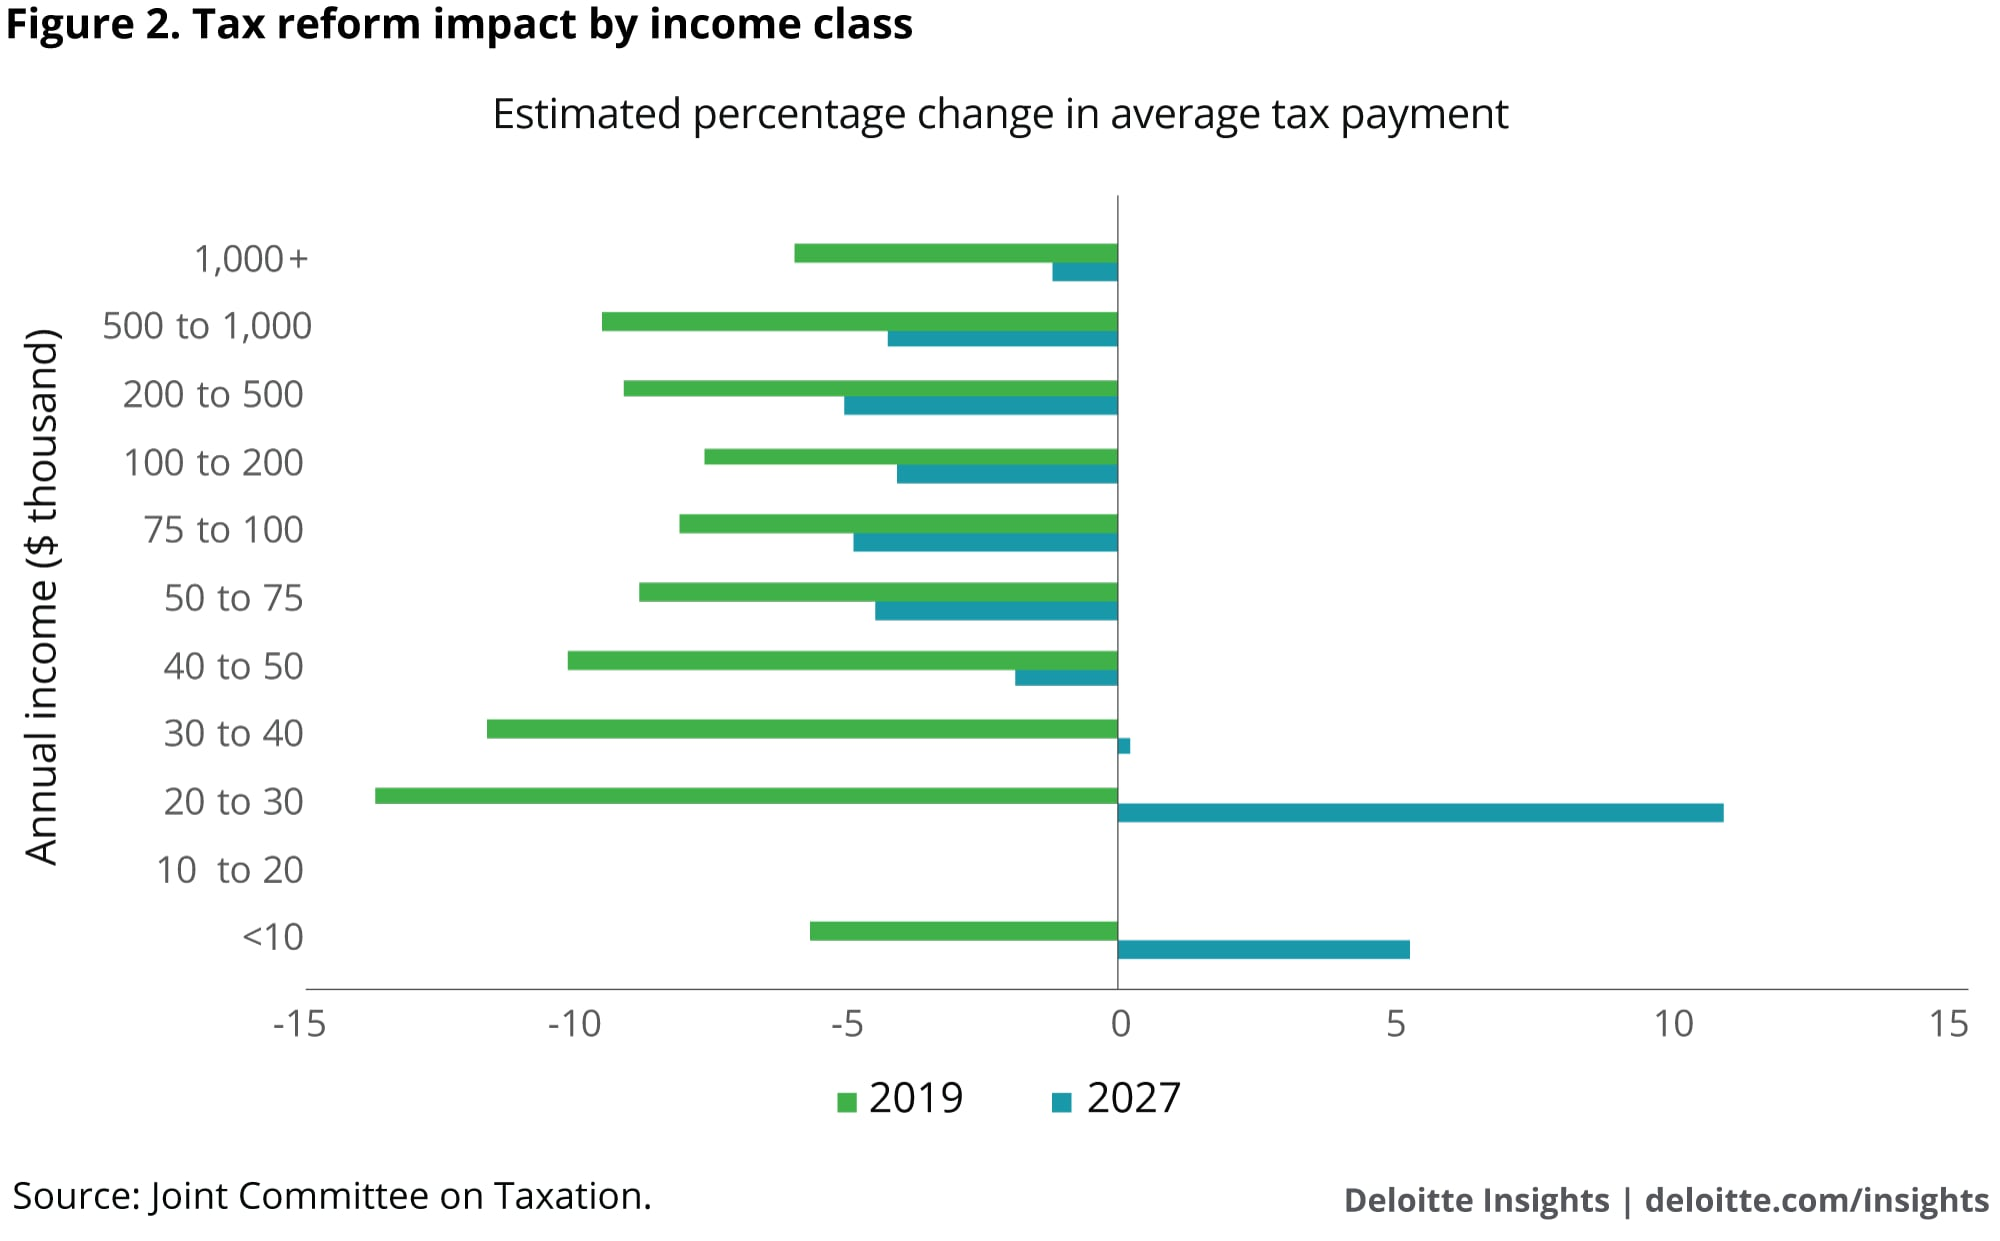 Tax reform impact by income class